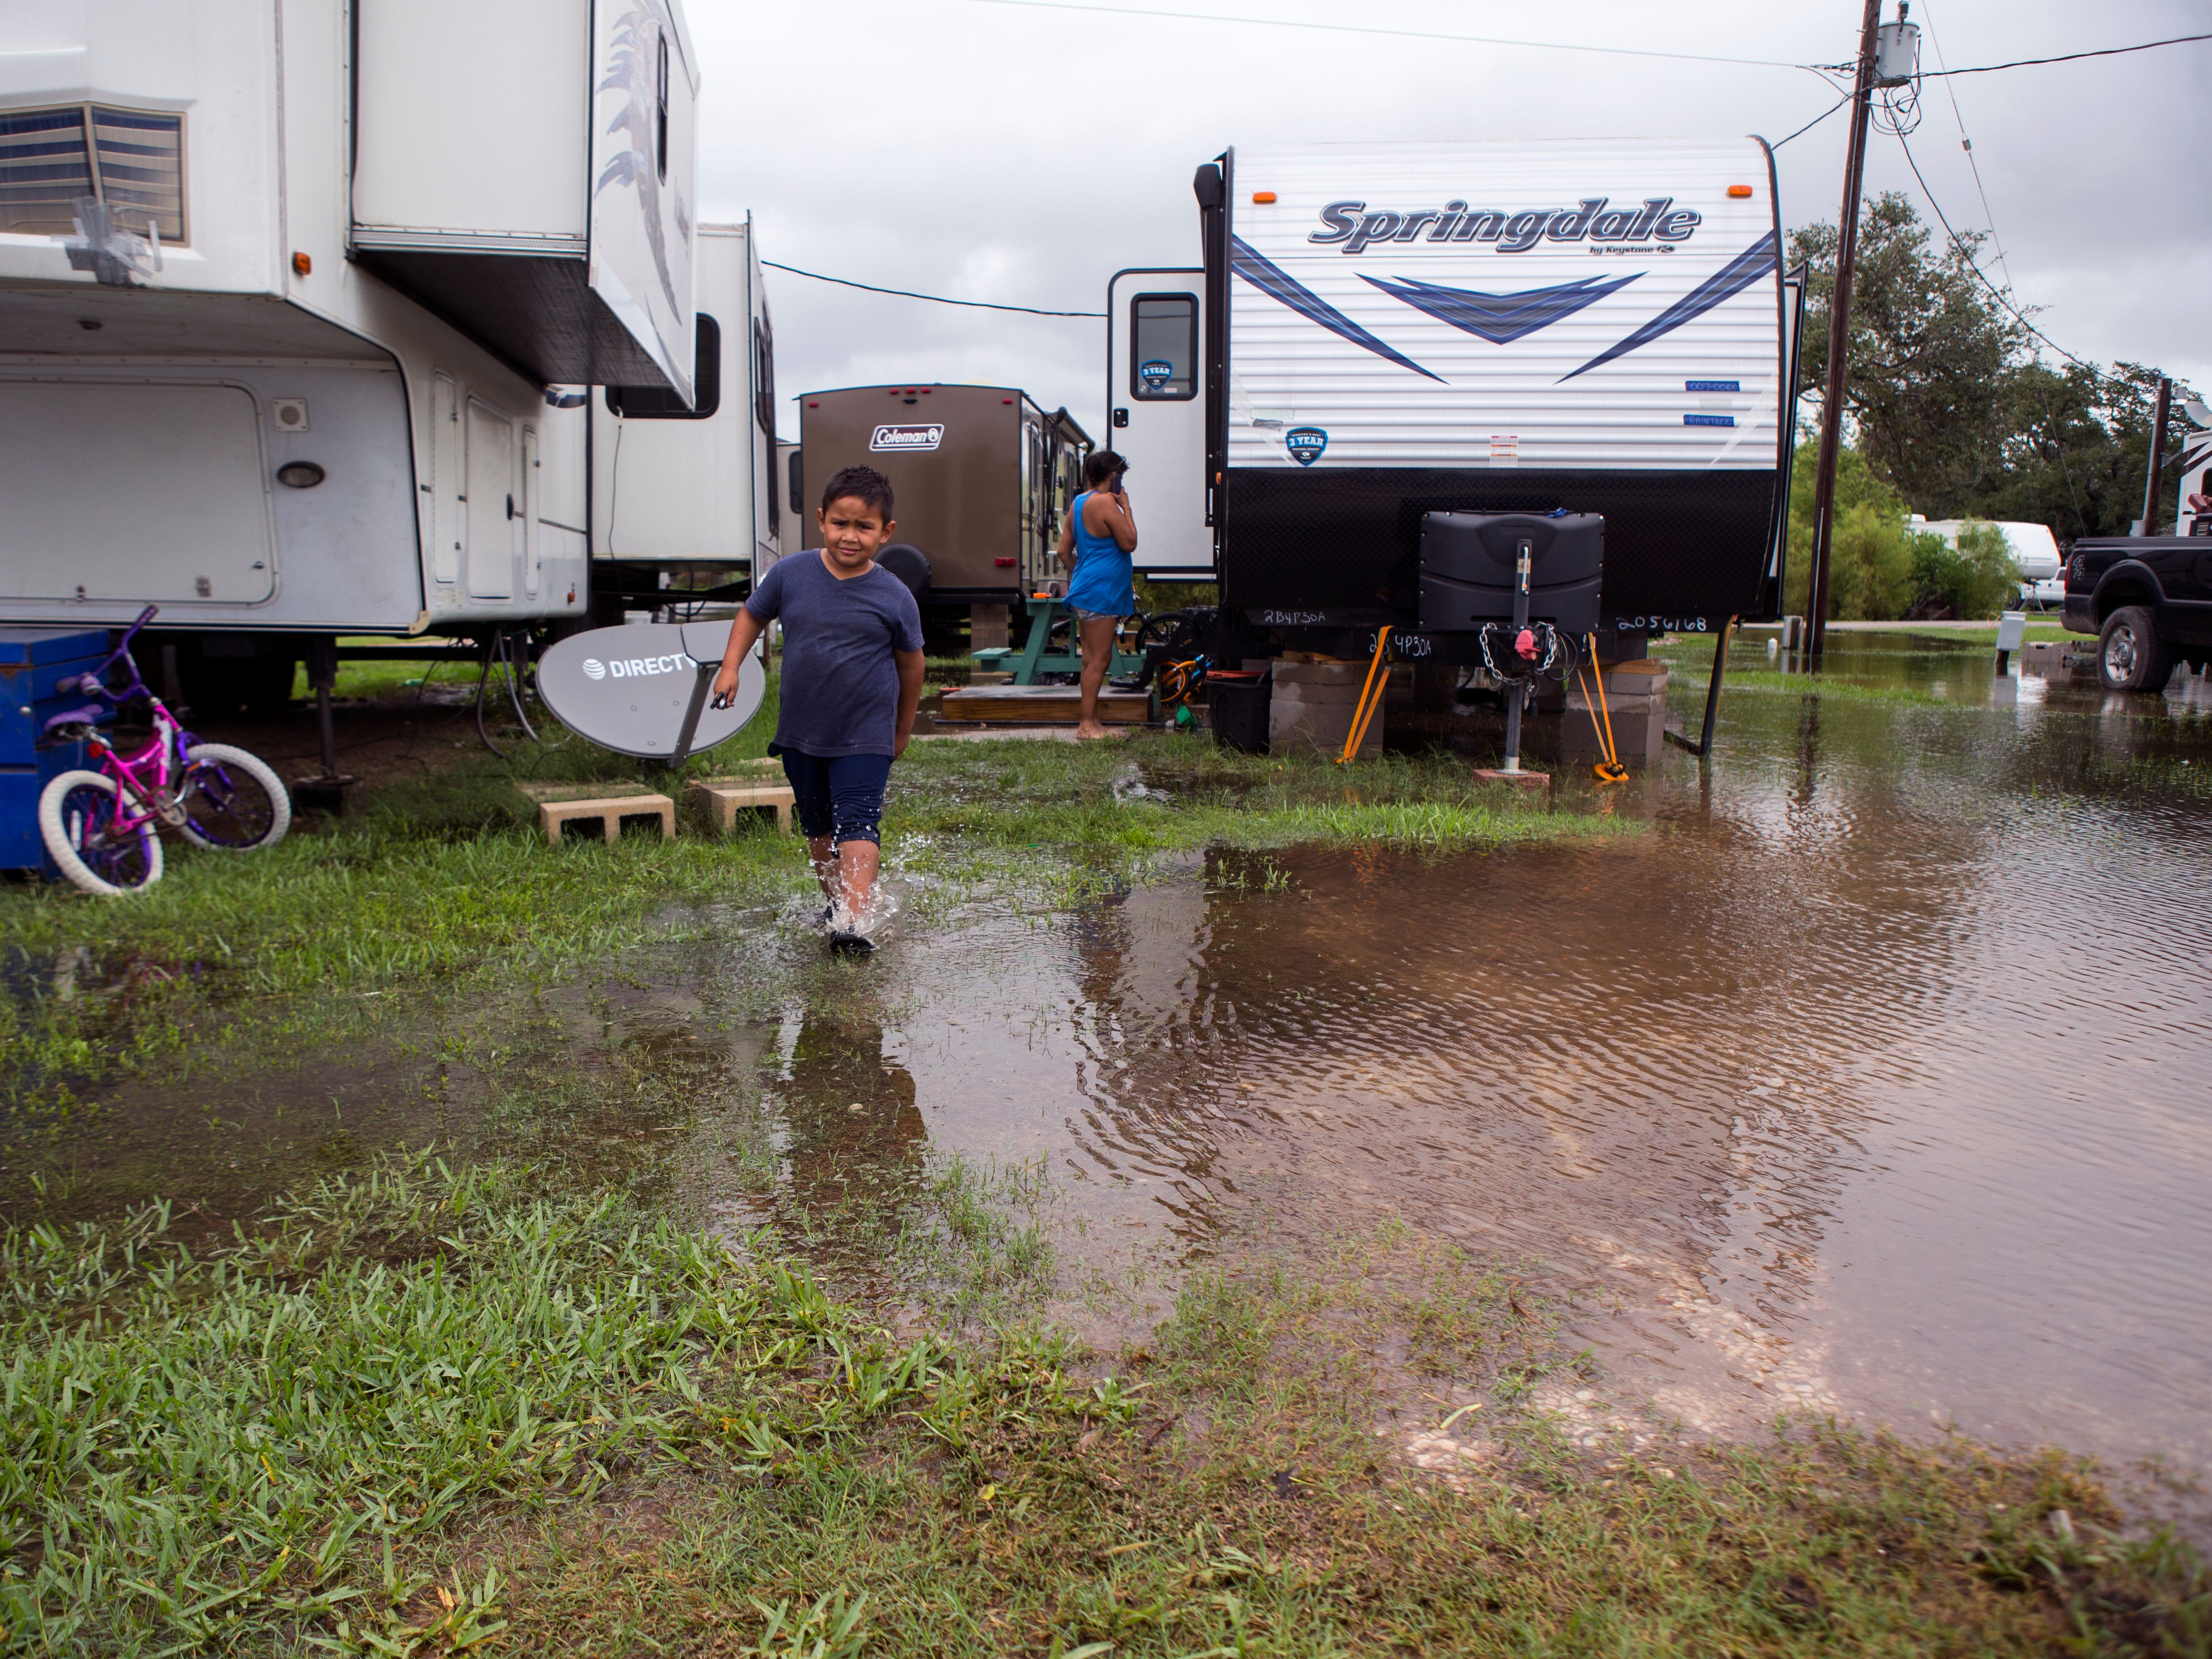 Rudy Garcia, 5, plays at the Raintree RV Park in Rockport on Saturday, September 15, 2018. Residents of the park were stuck in their homes due to high water.